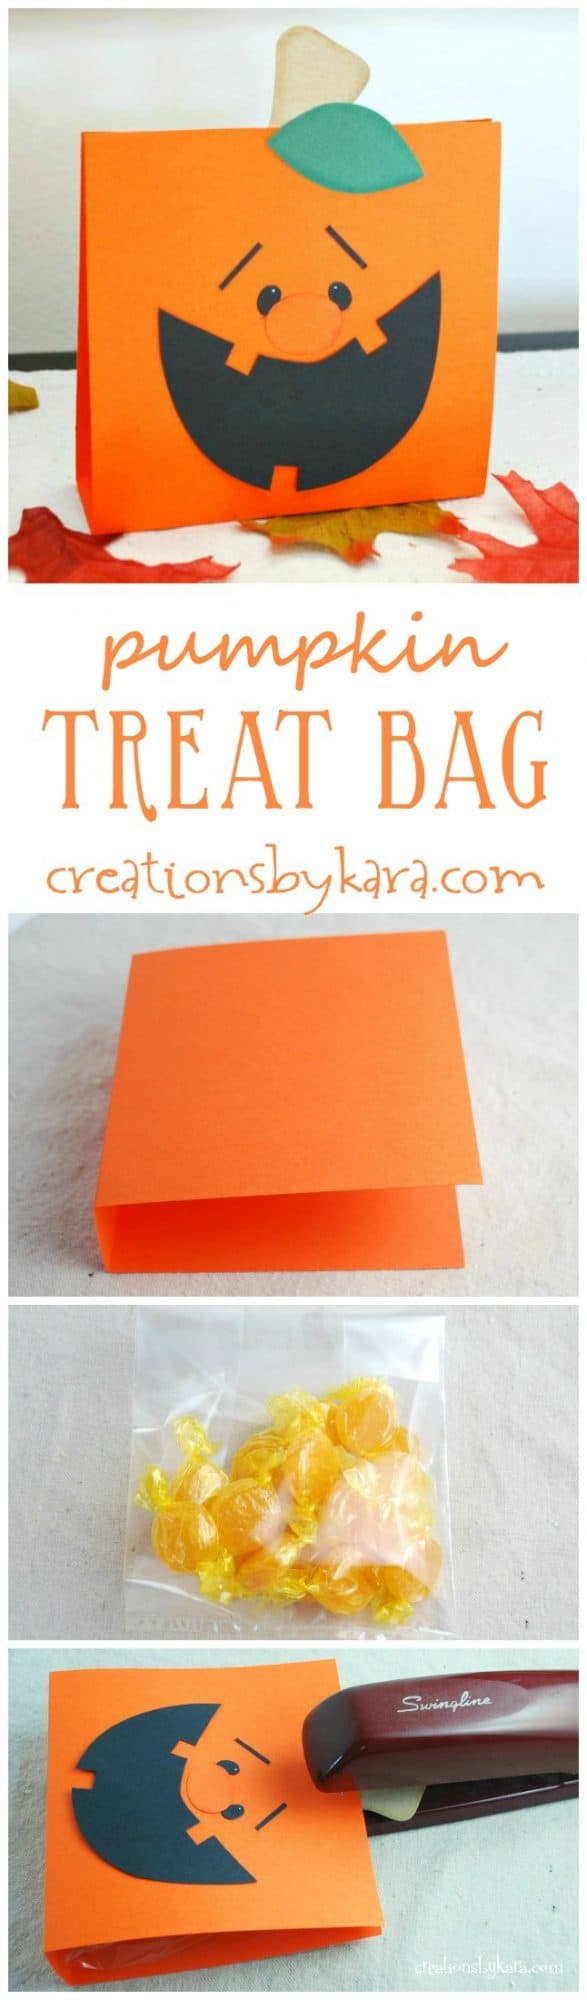 Pumpkin Treat Bag tutorial - includes free pattern!